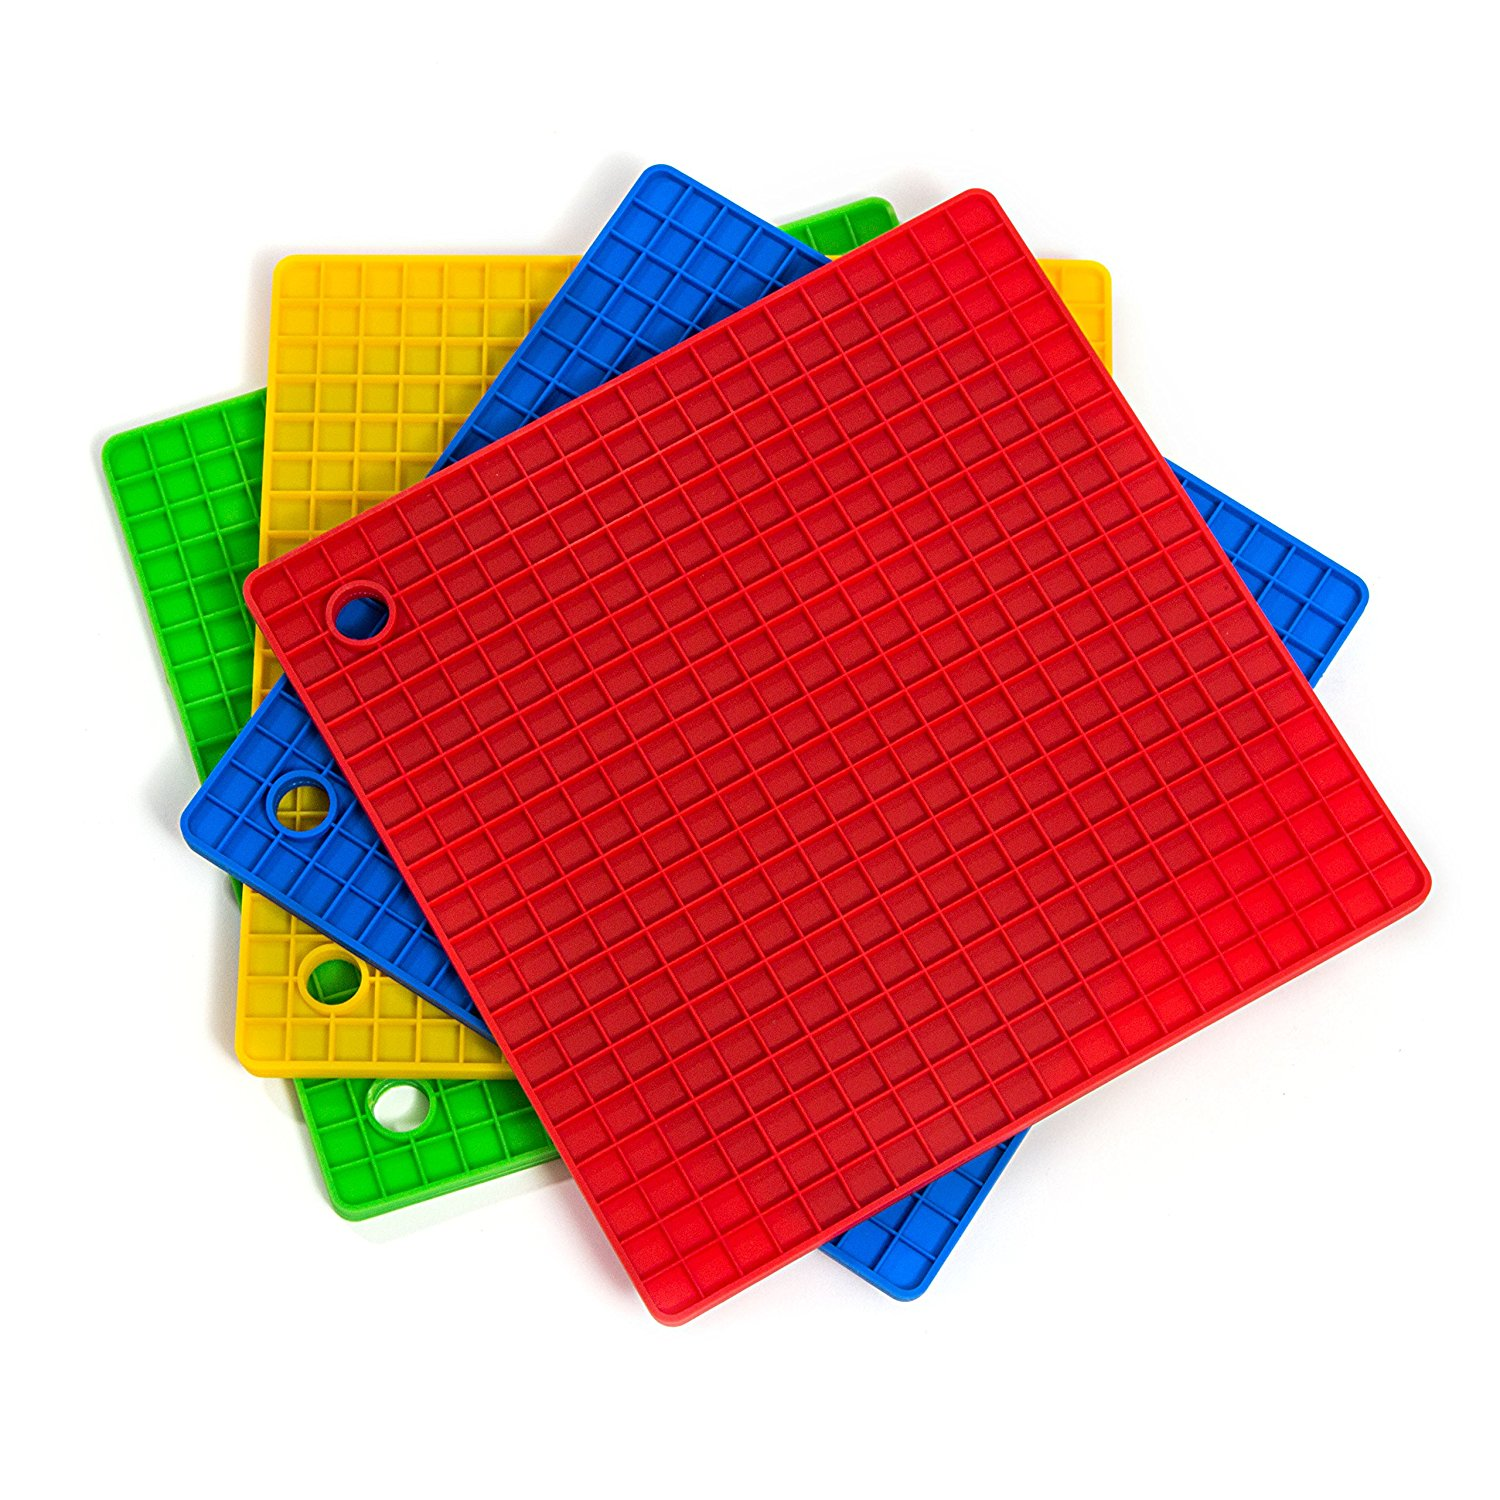 electronics station gun repair materials bts mat welding for soldering product heat resistant mats silicone btshow blanket f iron x pad